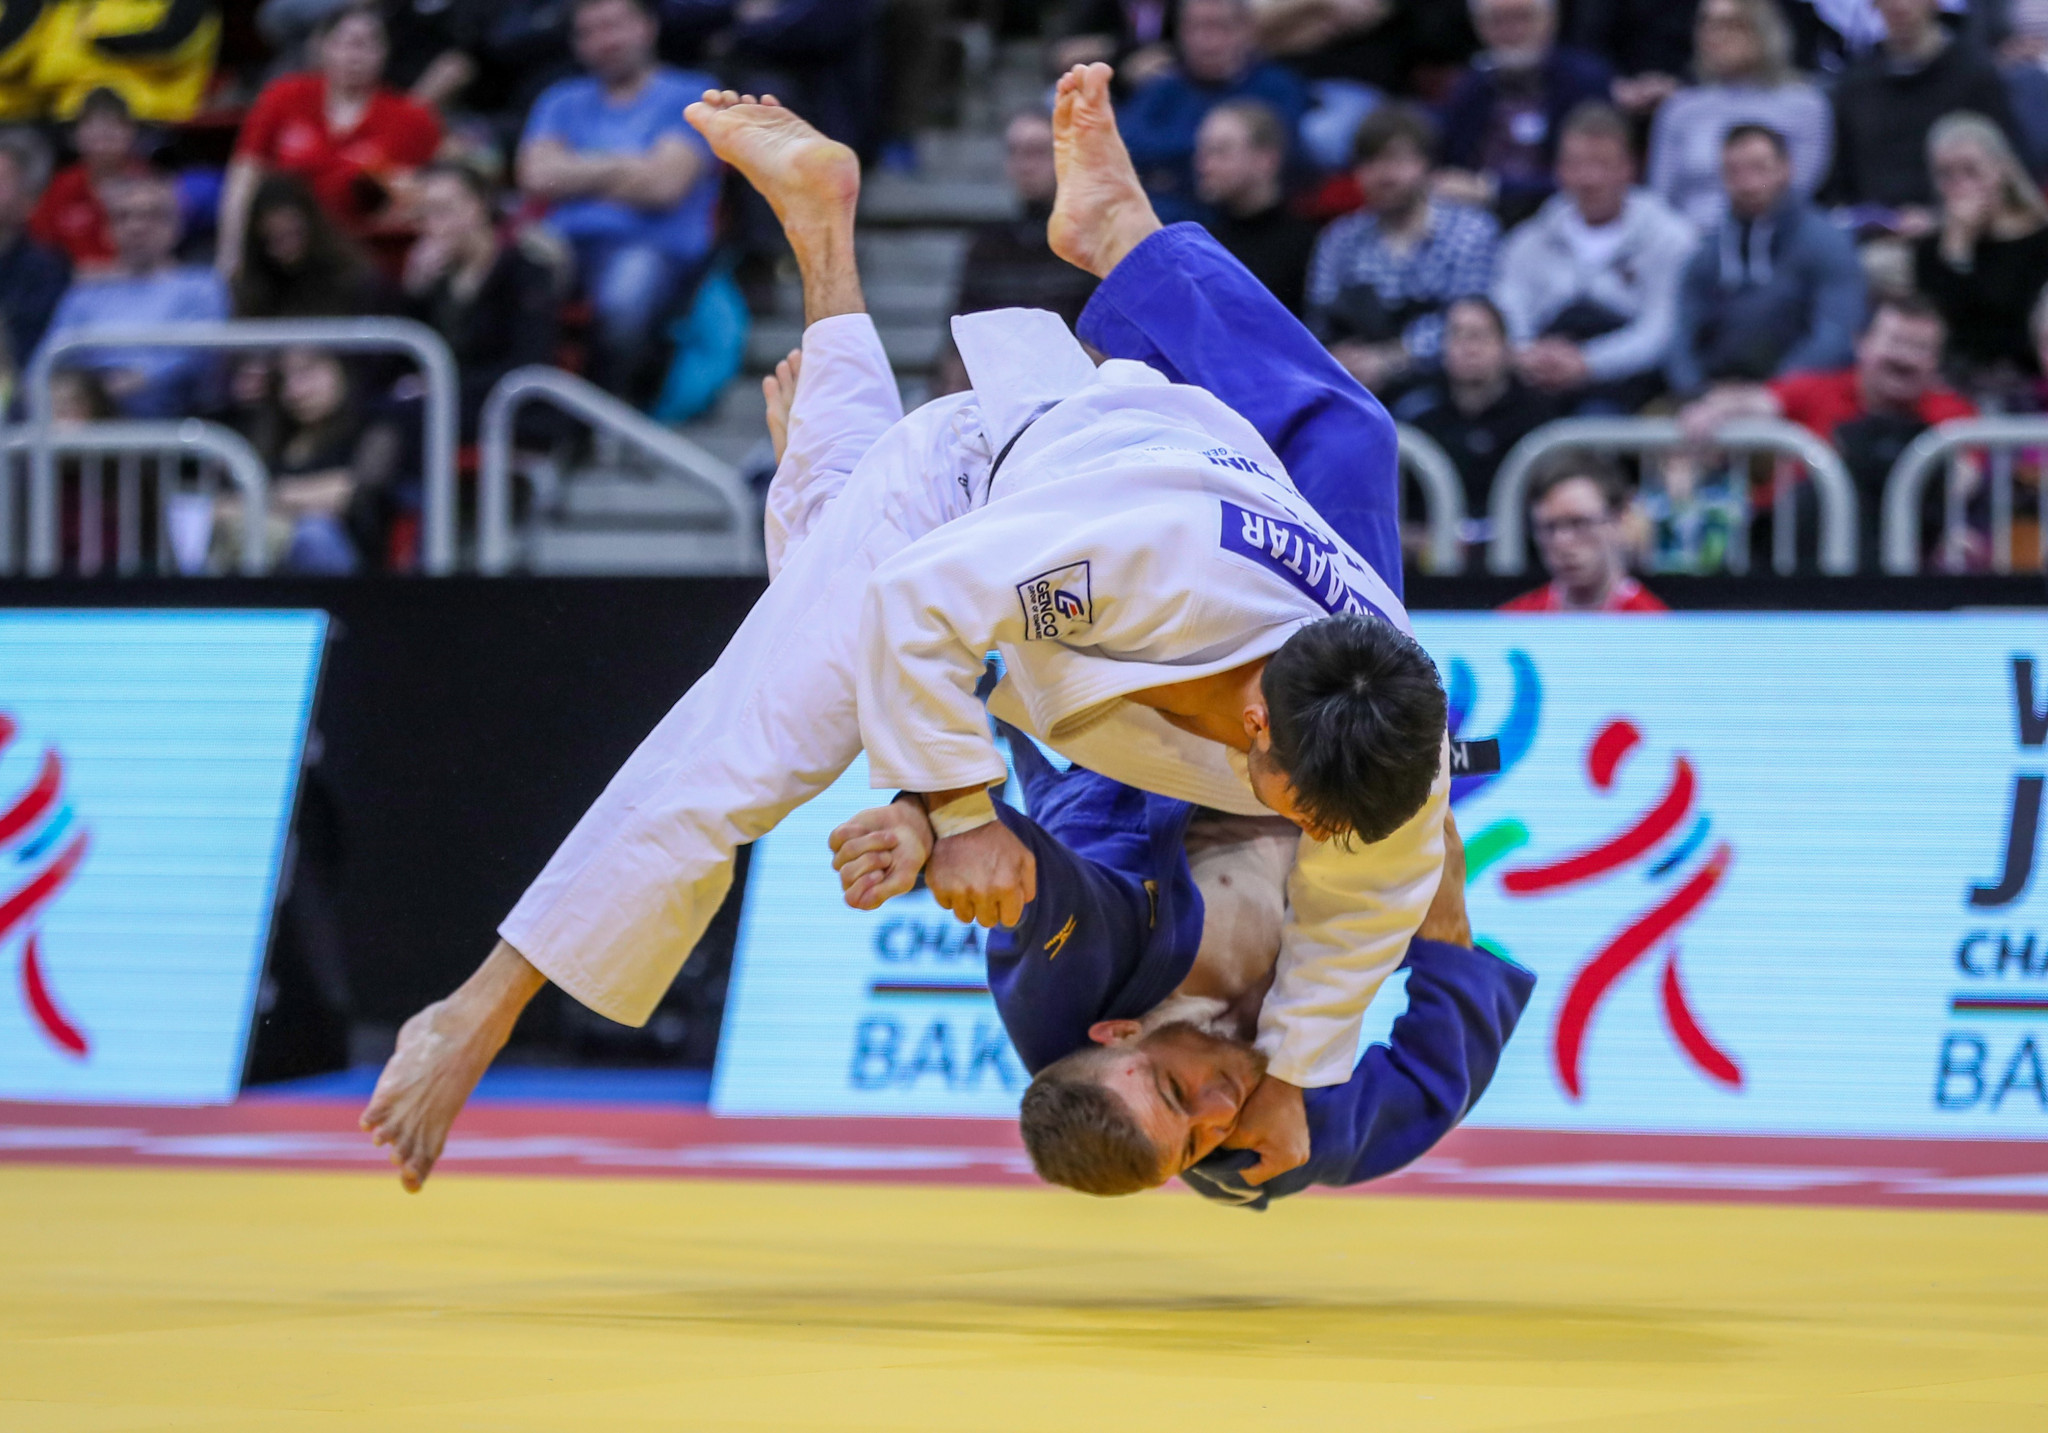 The 2018 IJF World Judo Championships, due to start in Baku in Azerbaijan on Thursday, are among the events set to be broadcast on Eurosport following the announcement of a new three-year deal ©IJF